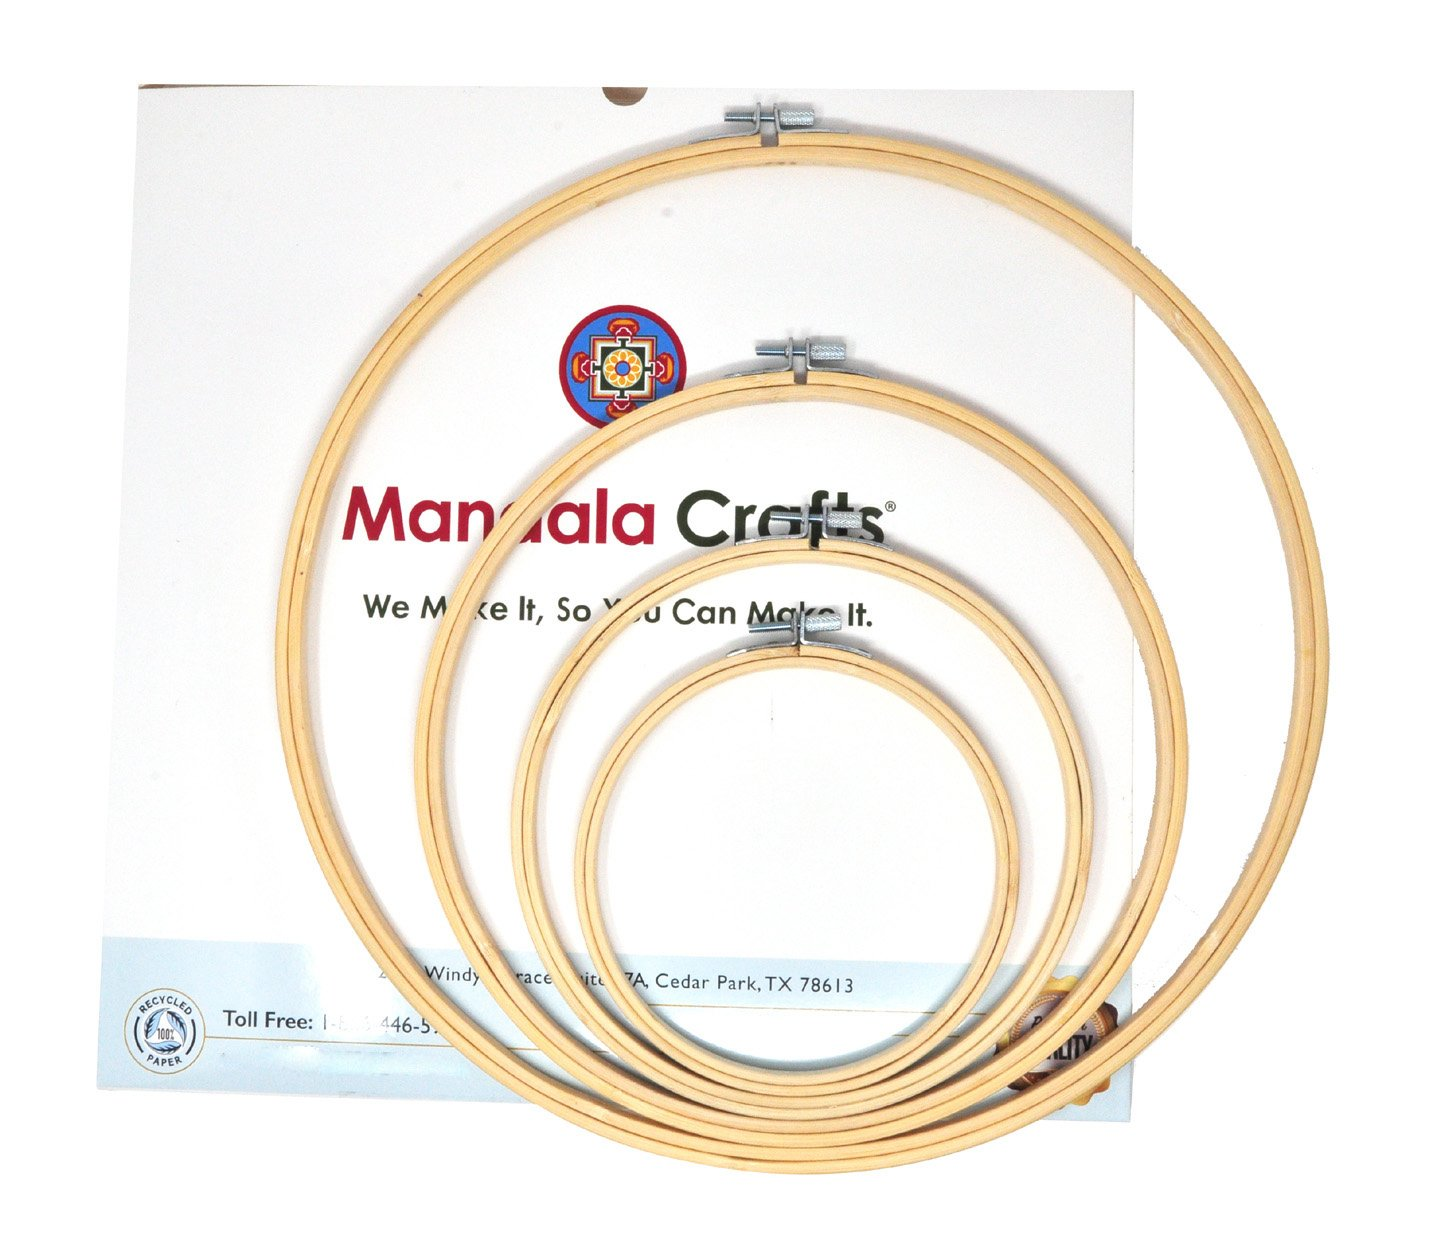 Mandala Crafts 4 Mini Large Bulk Circle Round Bamboo Cross Stitch Embroidery Hoop Frame Set (5, 7, 9, 12 Inches)